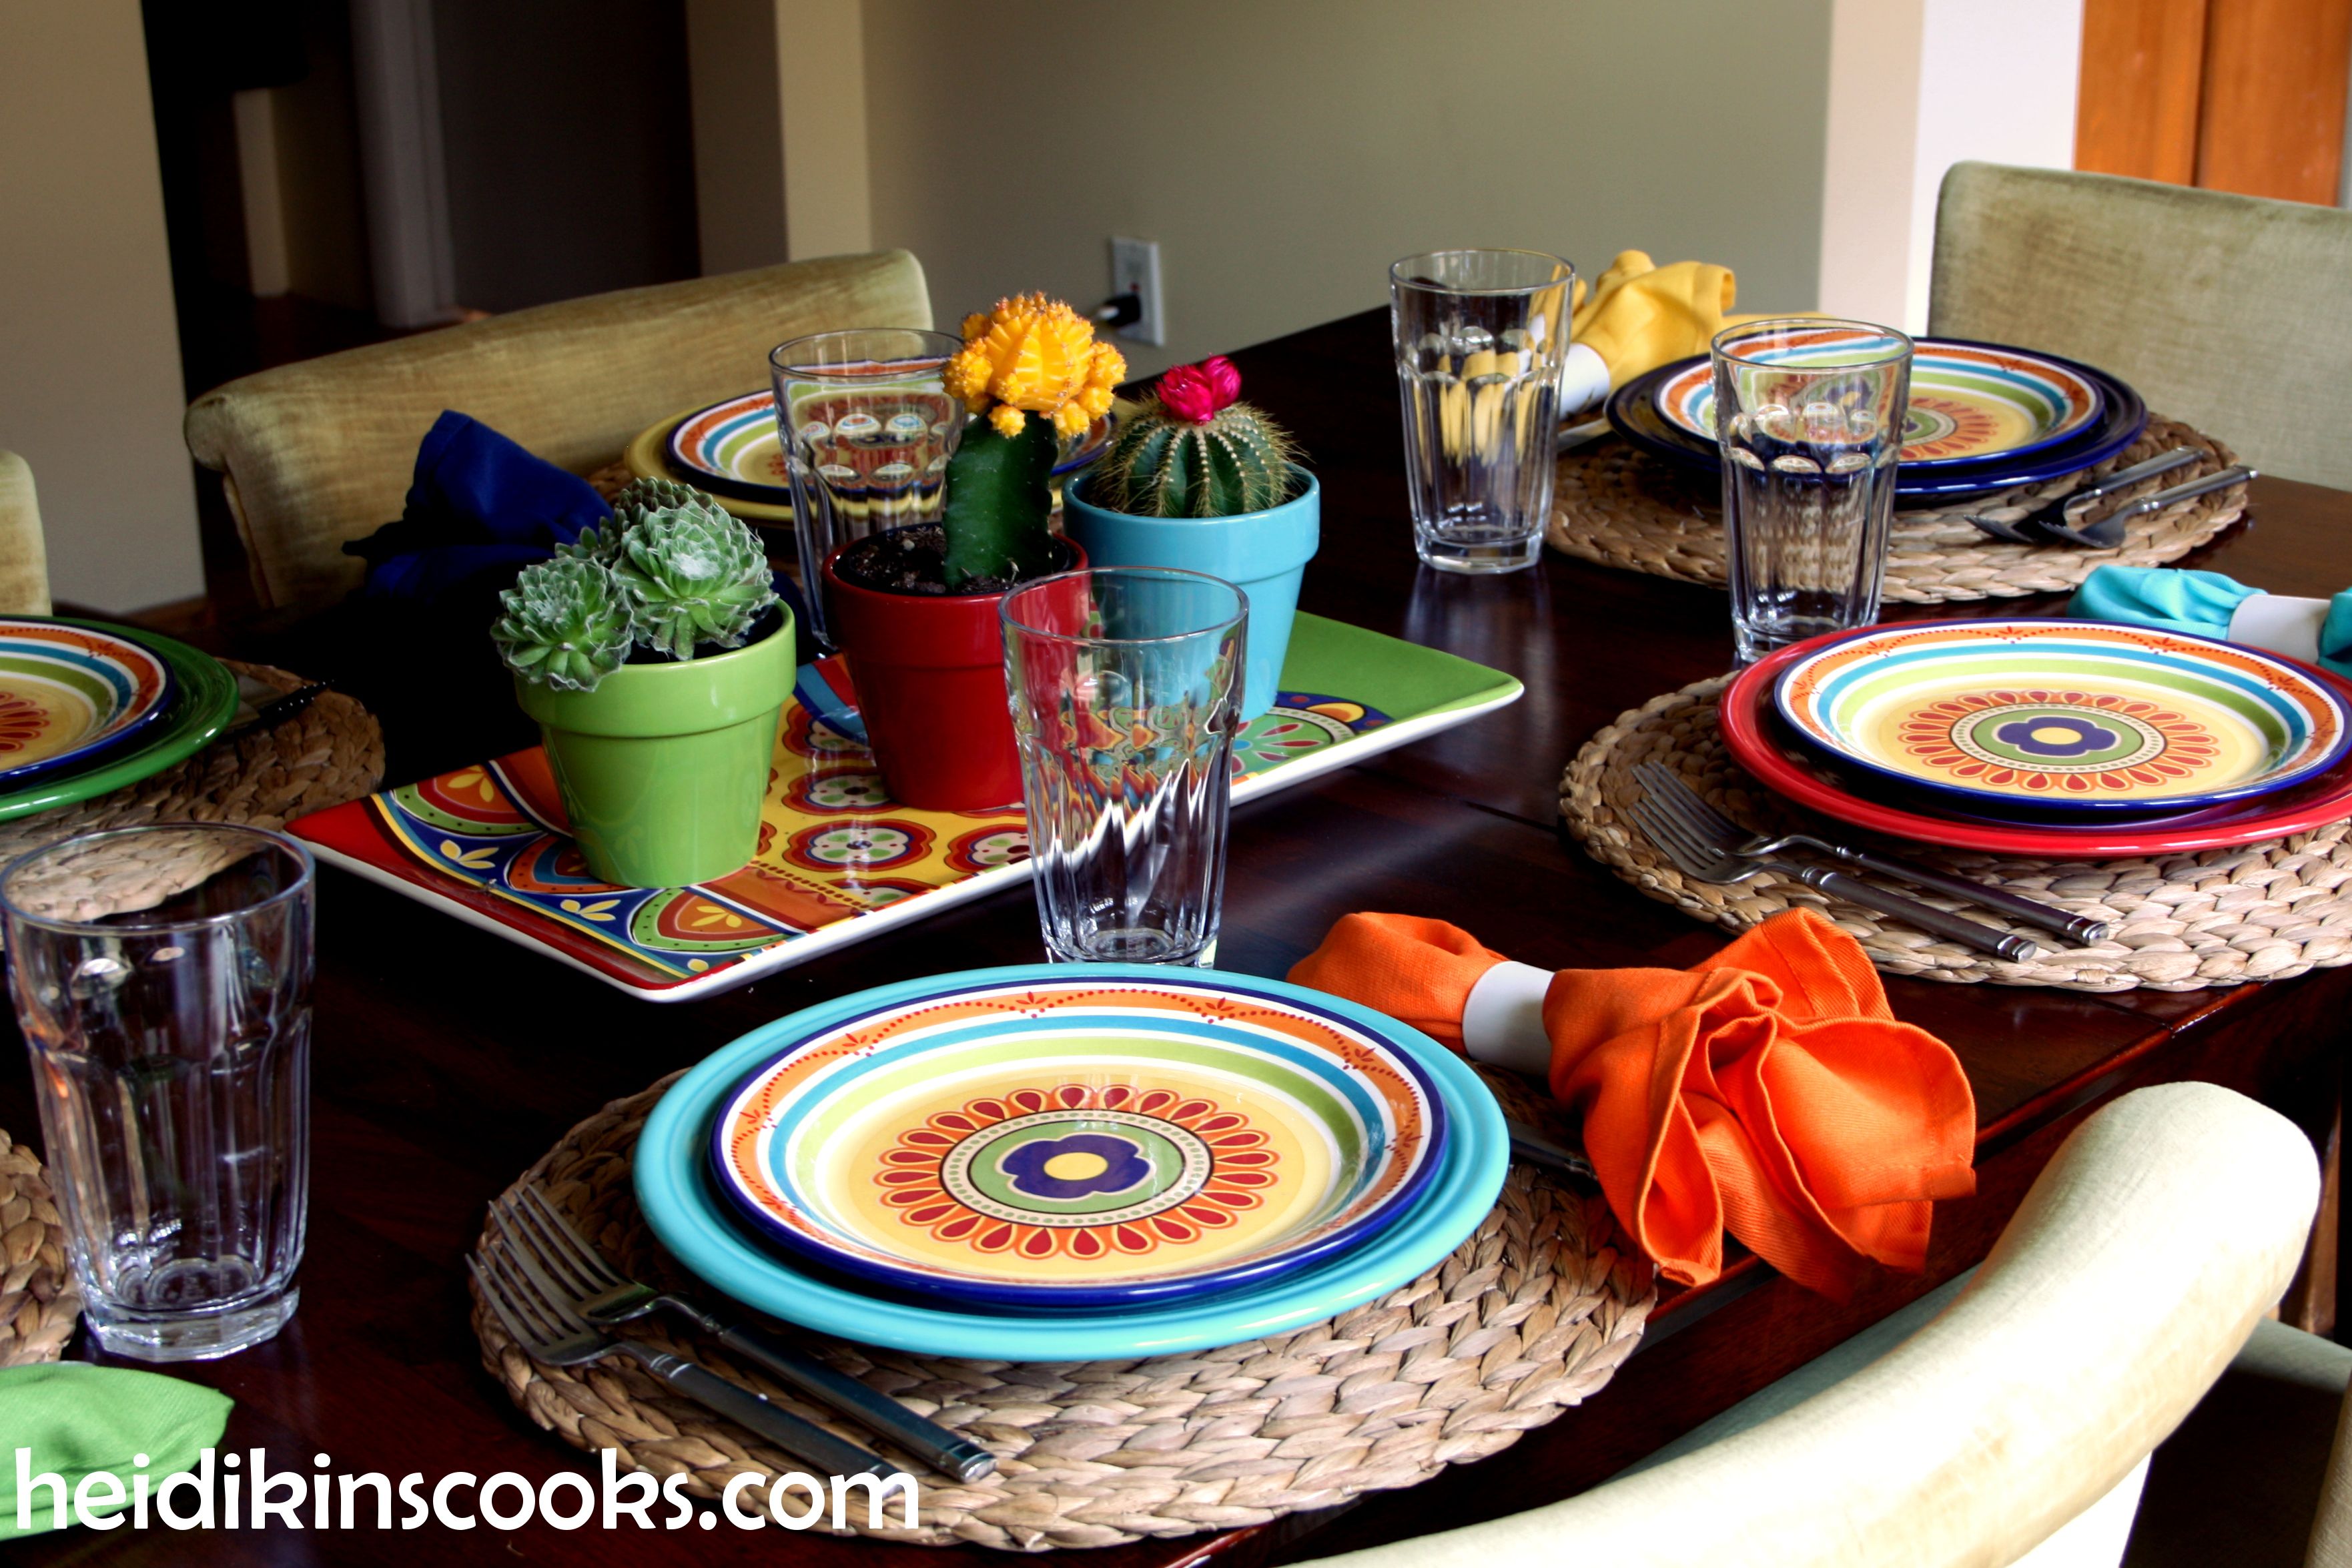 Mexicali Pier 1 Fiesta Fiestaware Tablescape 11_heidikinscooks_June 2014 & Setting the Table for a Fiesta! | heidikins cooks